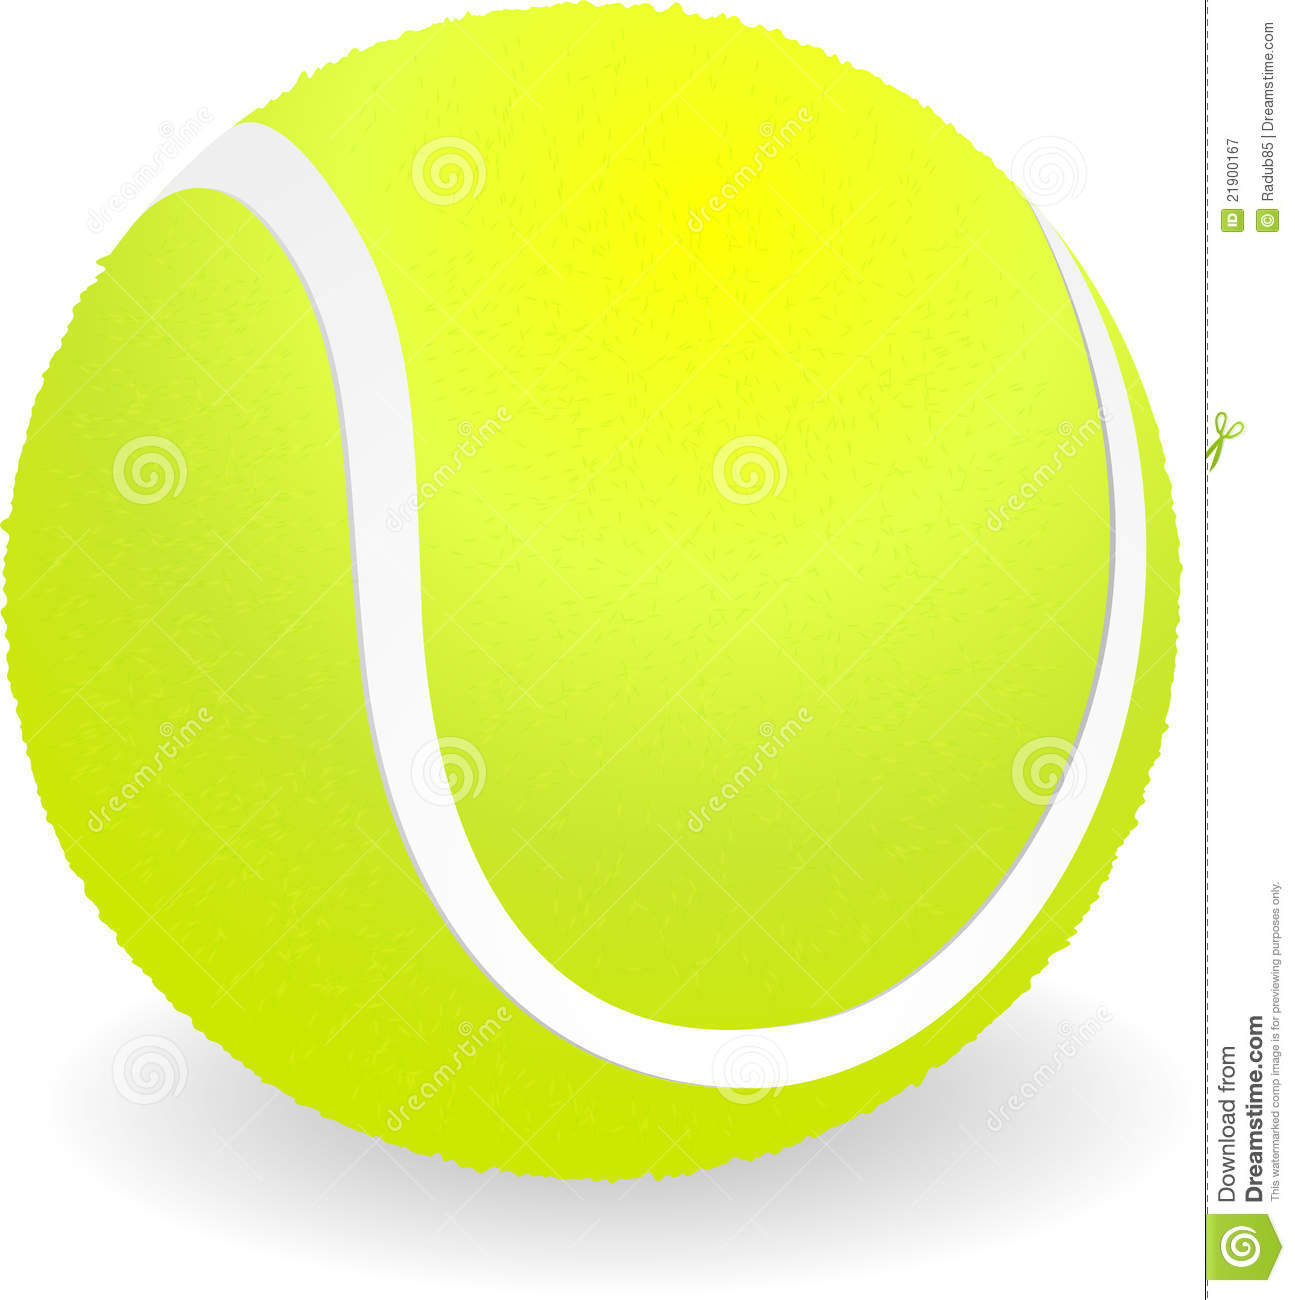 Tennis Ball Royalty Free Stock Photograp-Tennis Ball Royalty Free Stock Photography Image 21900167-16